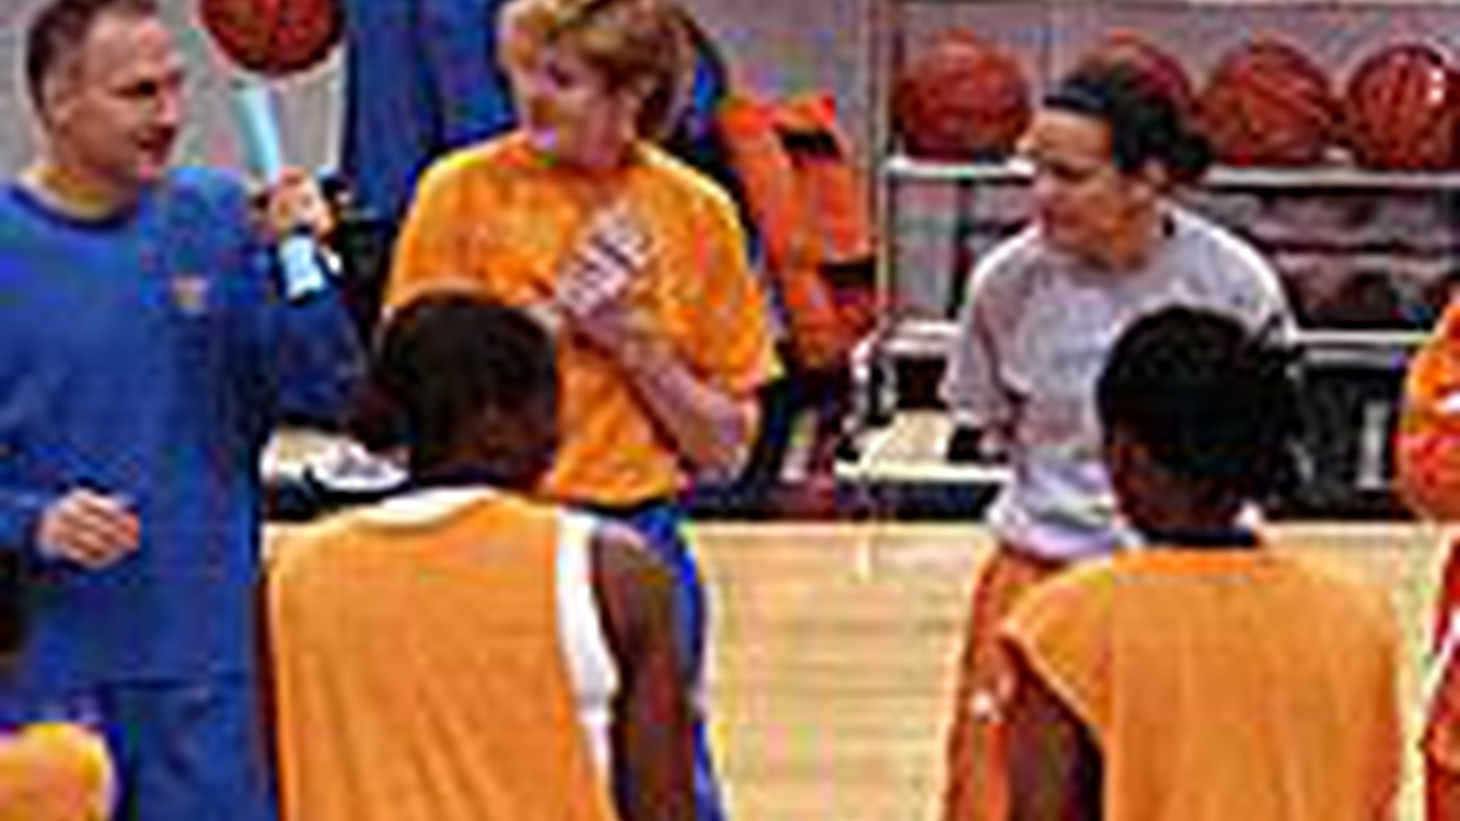 There's a bit of a debate going on in the arena of women's college basketball and it's an interesting dilemma. The issue is male players brought in to heighten the quality of practice sessions. It started back in the 1970's when legendary University of Tennessee coach Pat Summitt was evidently the first coach of a high-powered women's team to have guys practice against her first string...